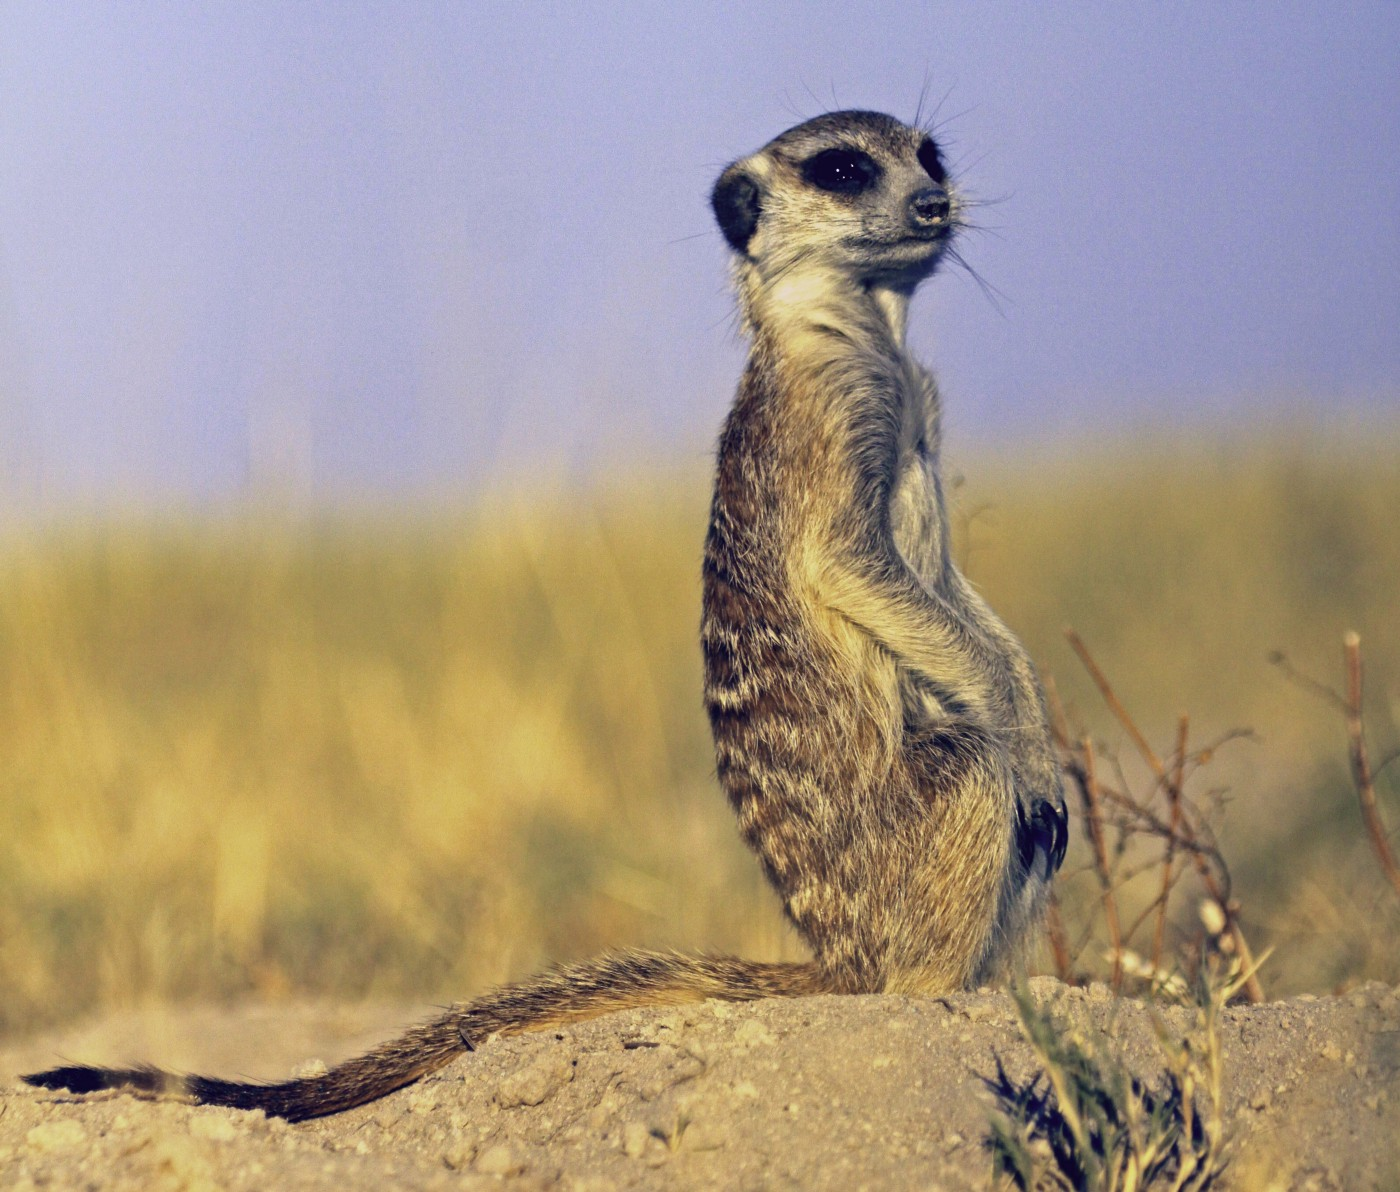 Meerkat sitting on its haunches